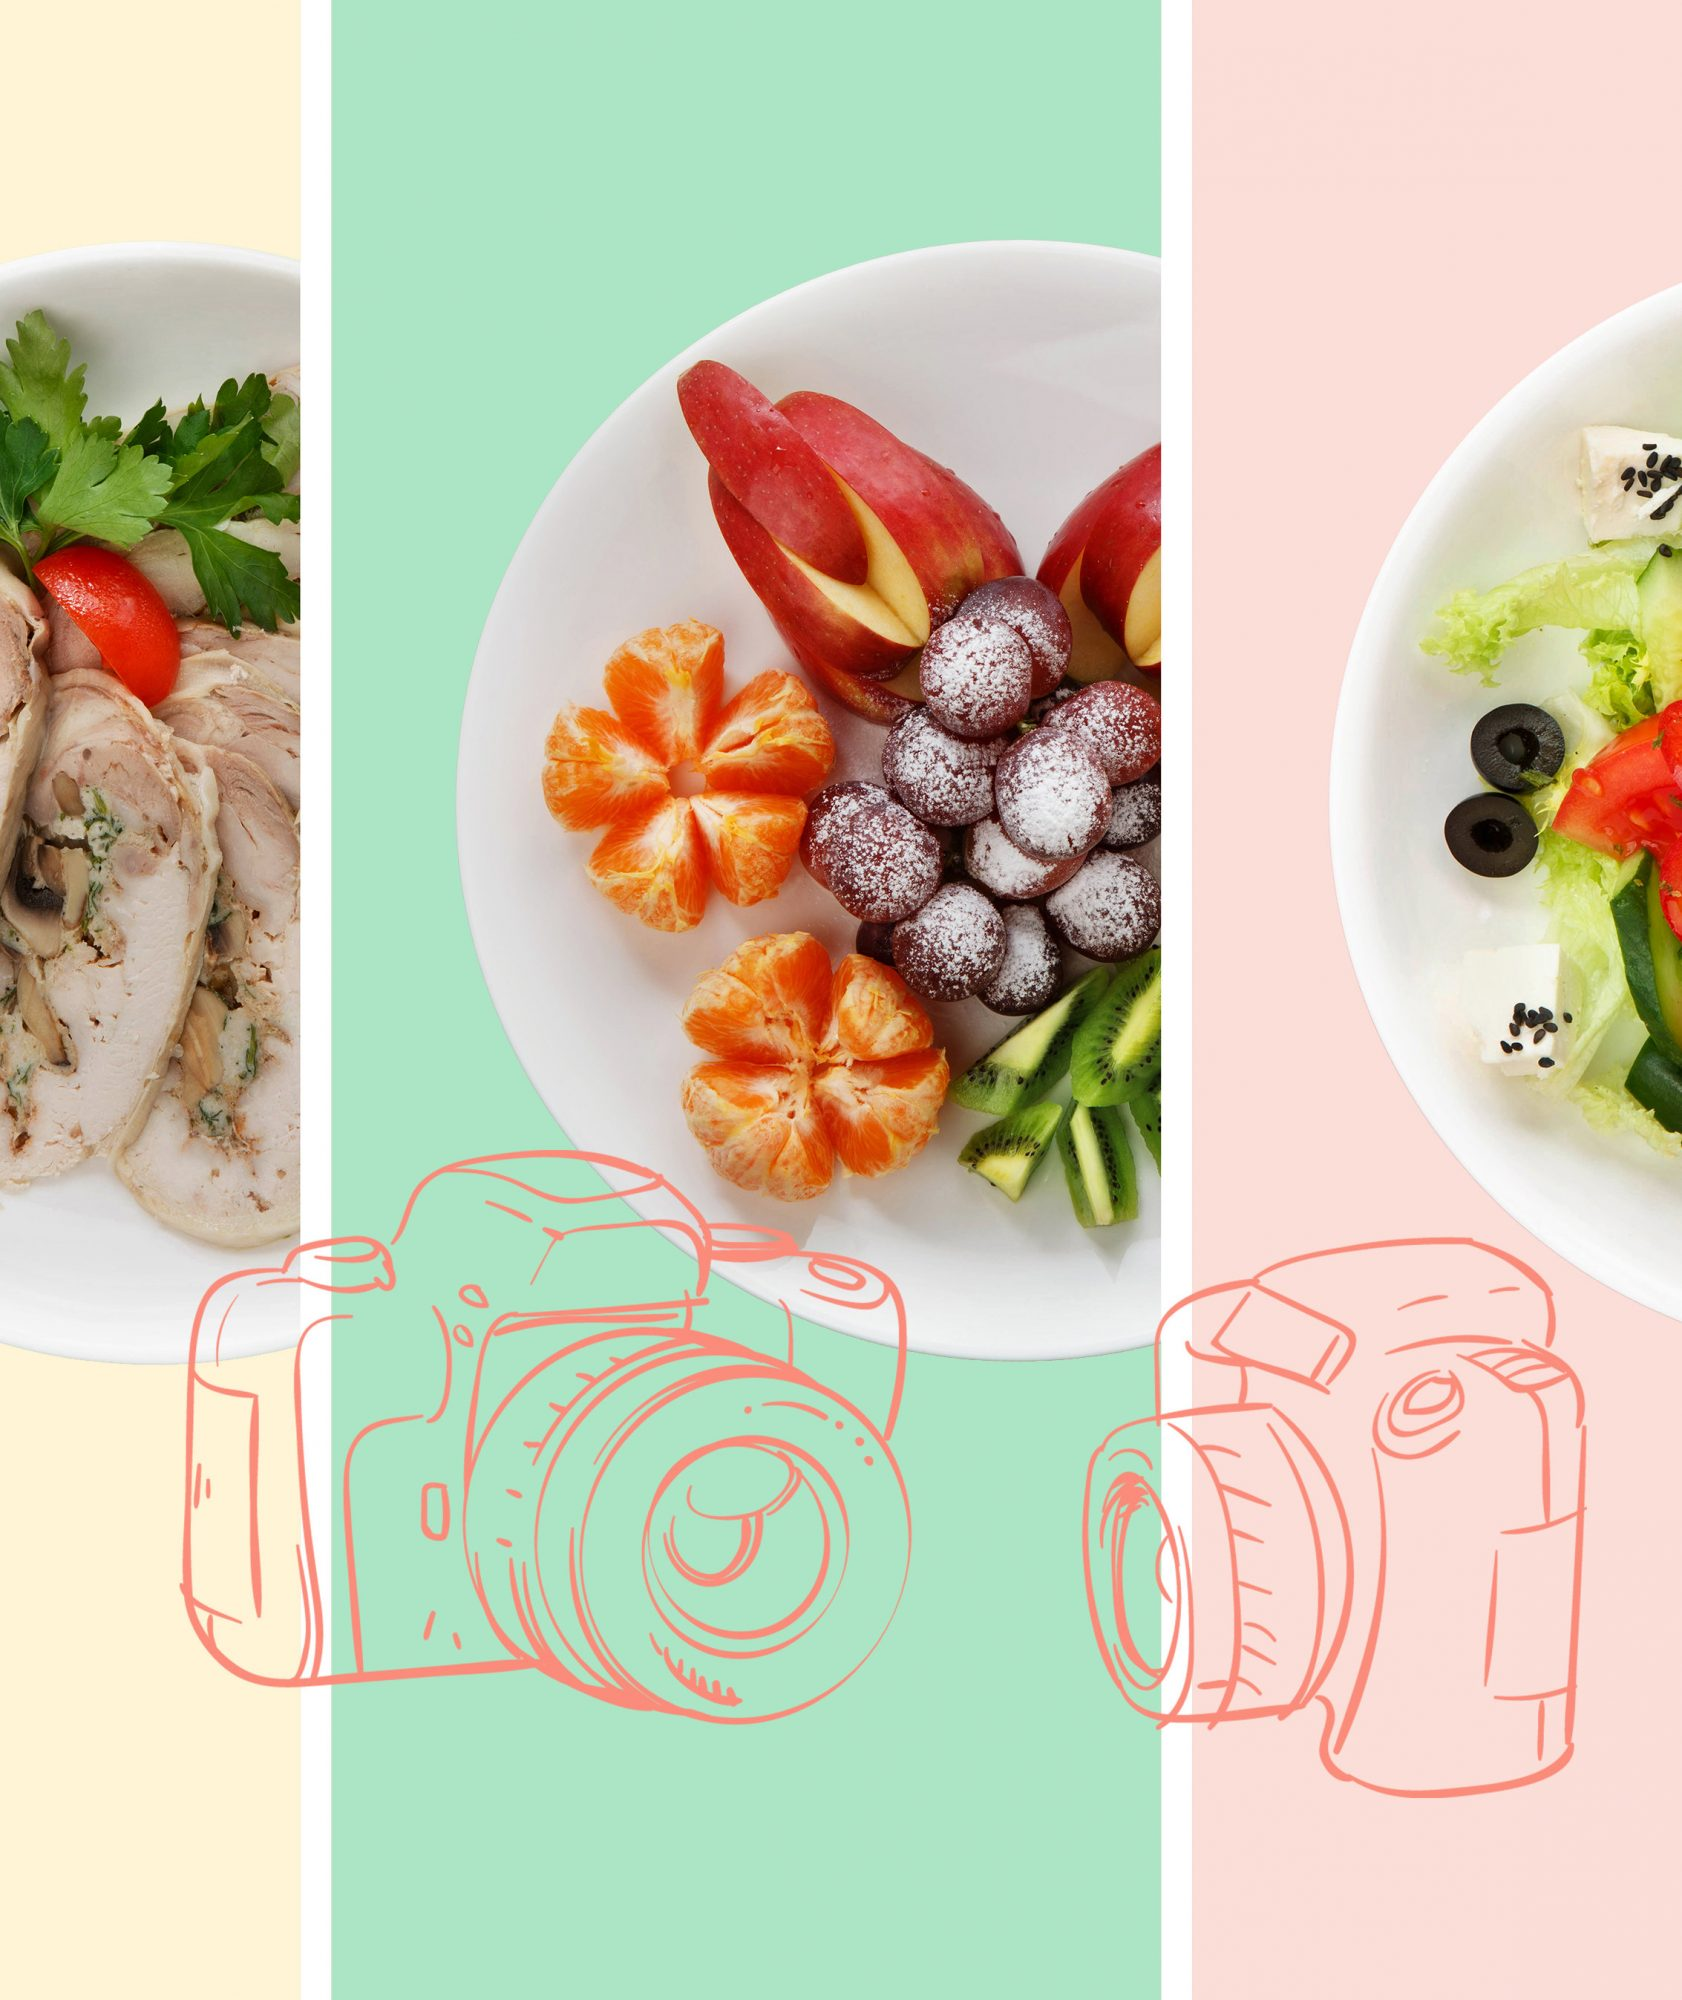 The Secretto Capturing Picture-Perfect Food Photos, According to an Industry Pro